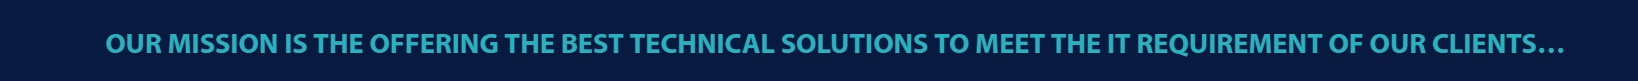 Boulout image-bar, IT Services and Suppport